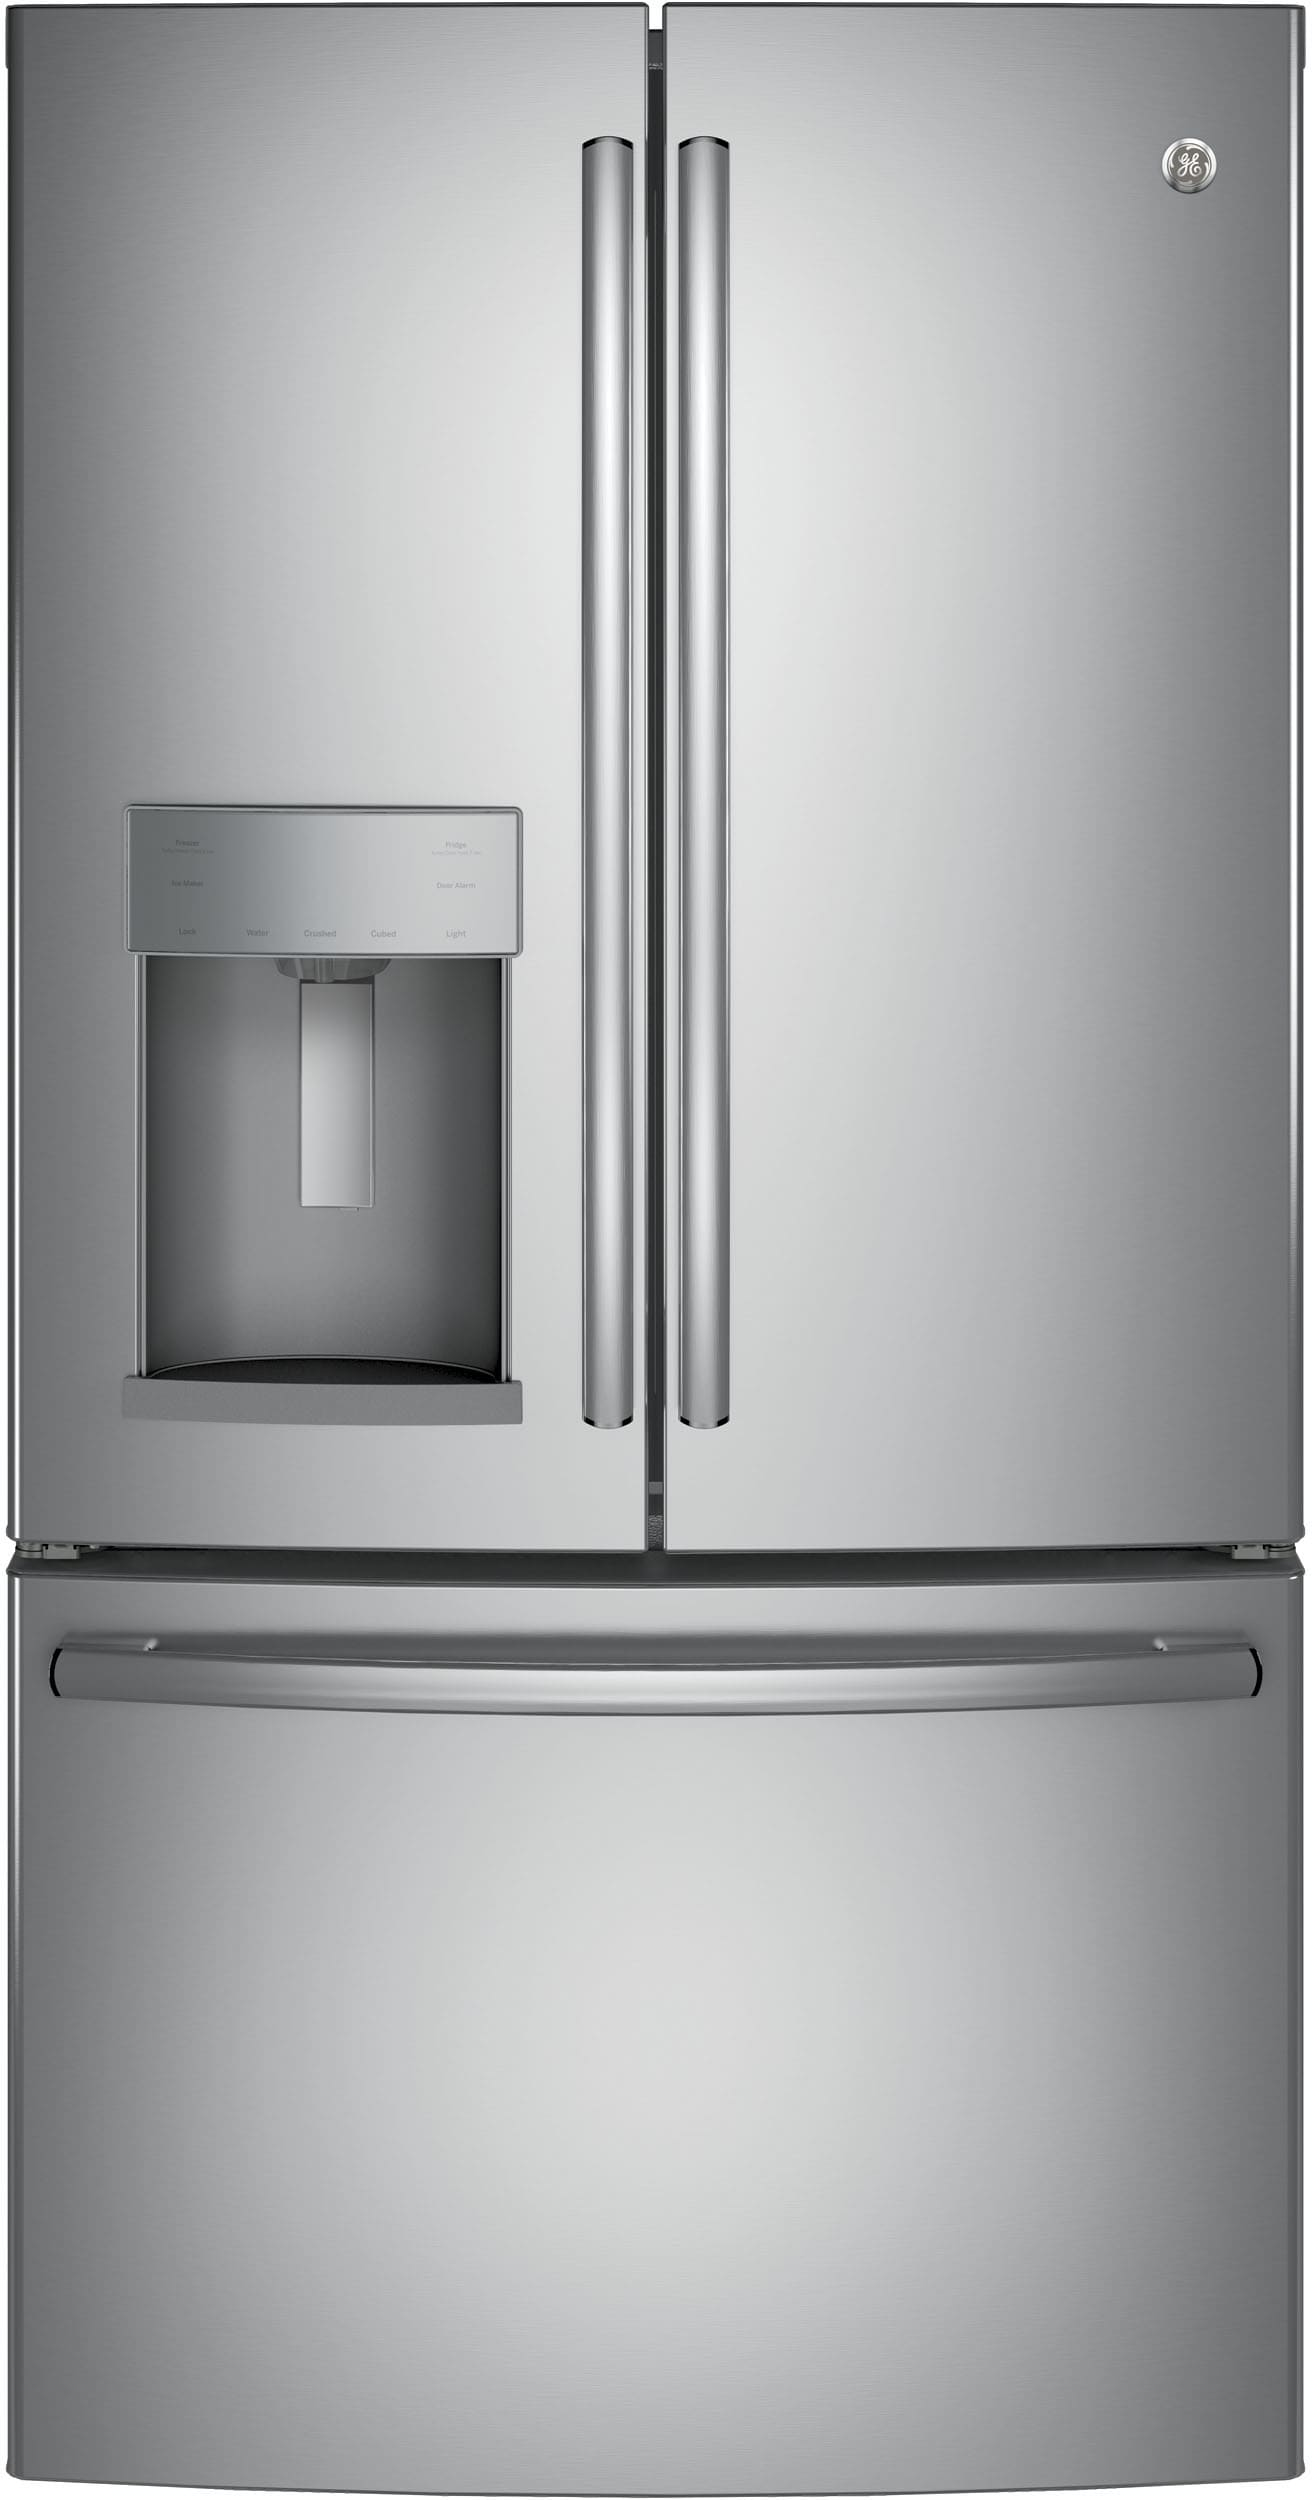 Ge Gfe28gskss 36 Inch French Door Refrigerator With